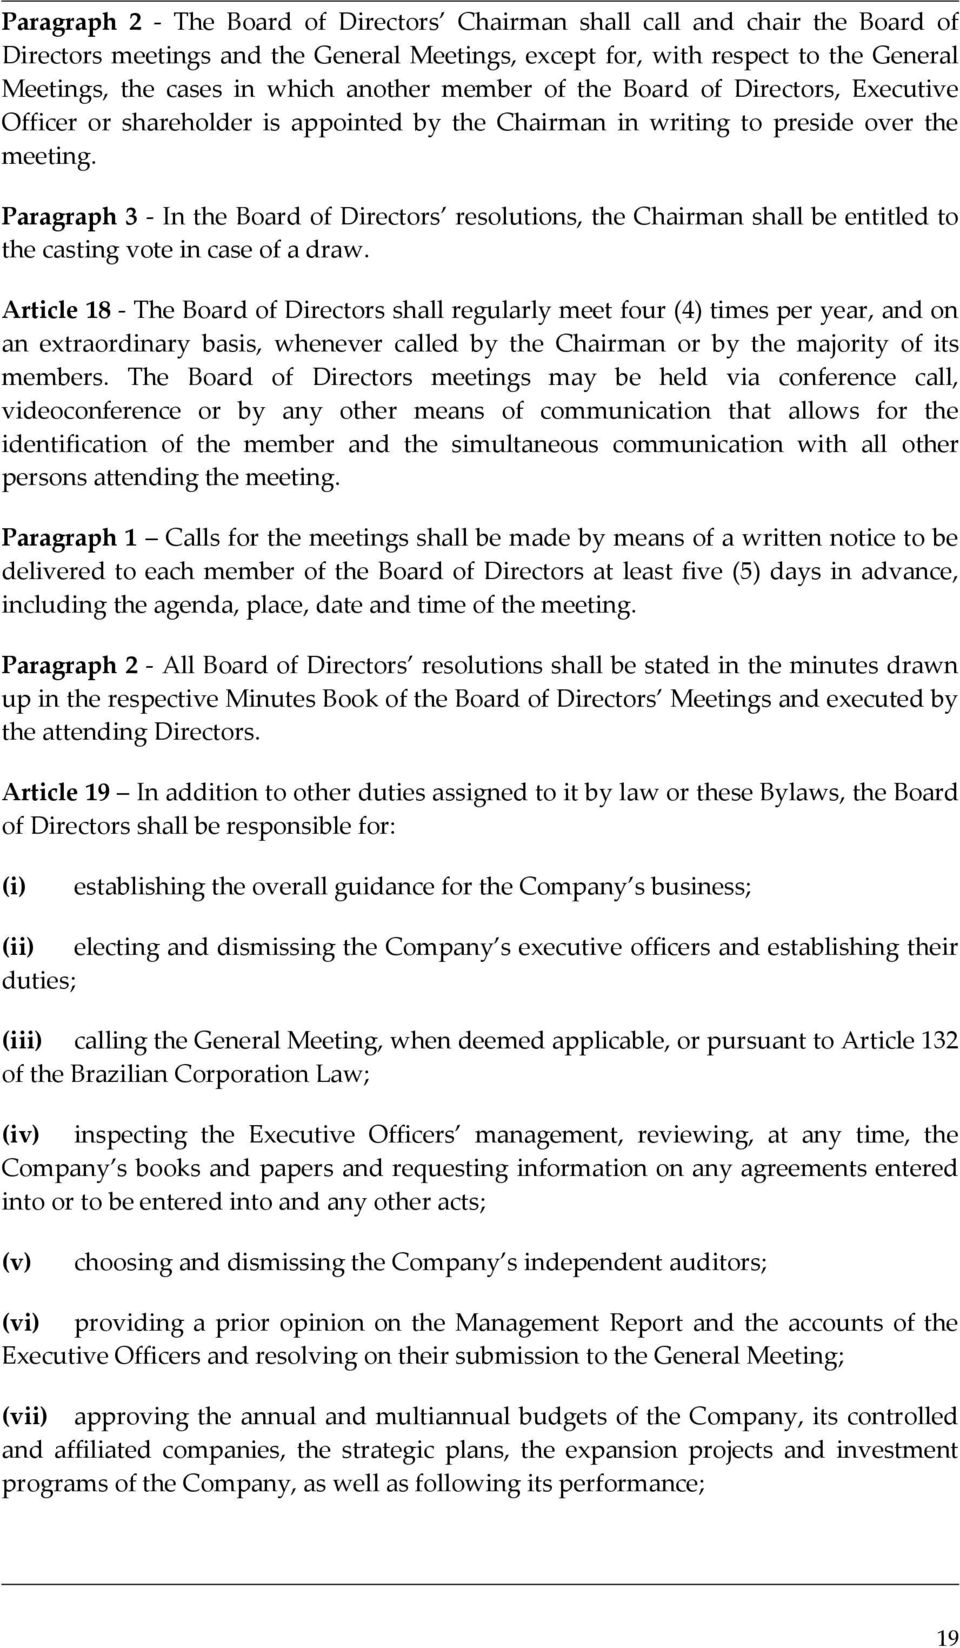 Paragraph 3 - In the Board of Directors resolutions, the Chairman shall be entitled to the casting vote in case of a draw.